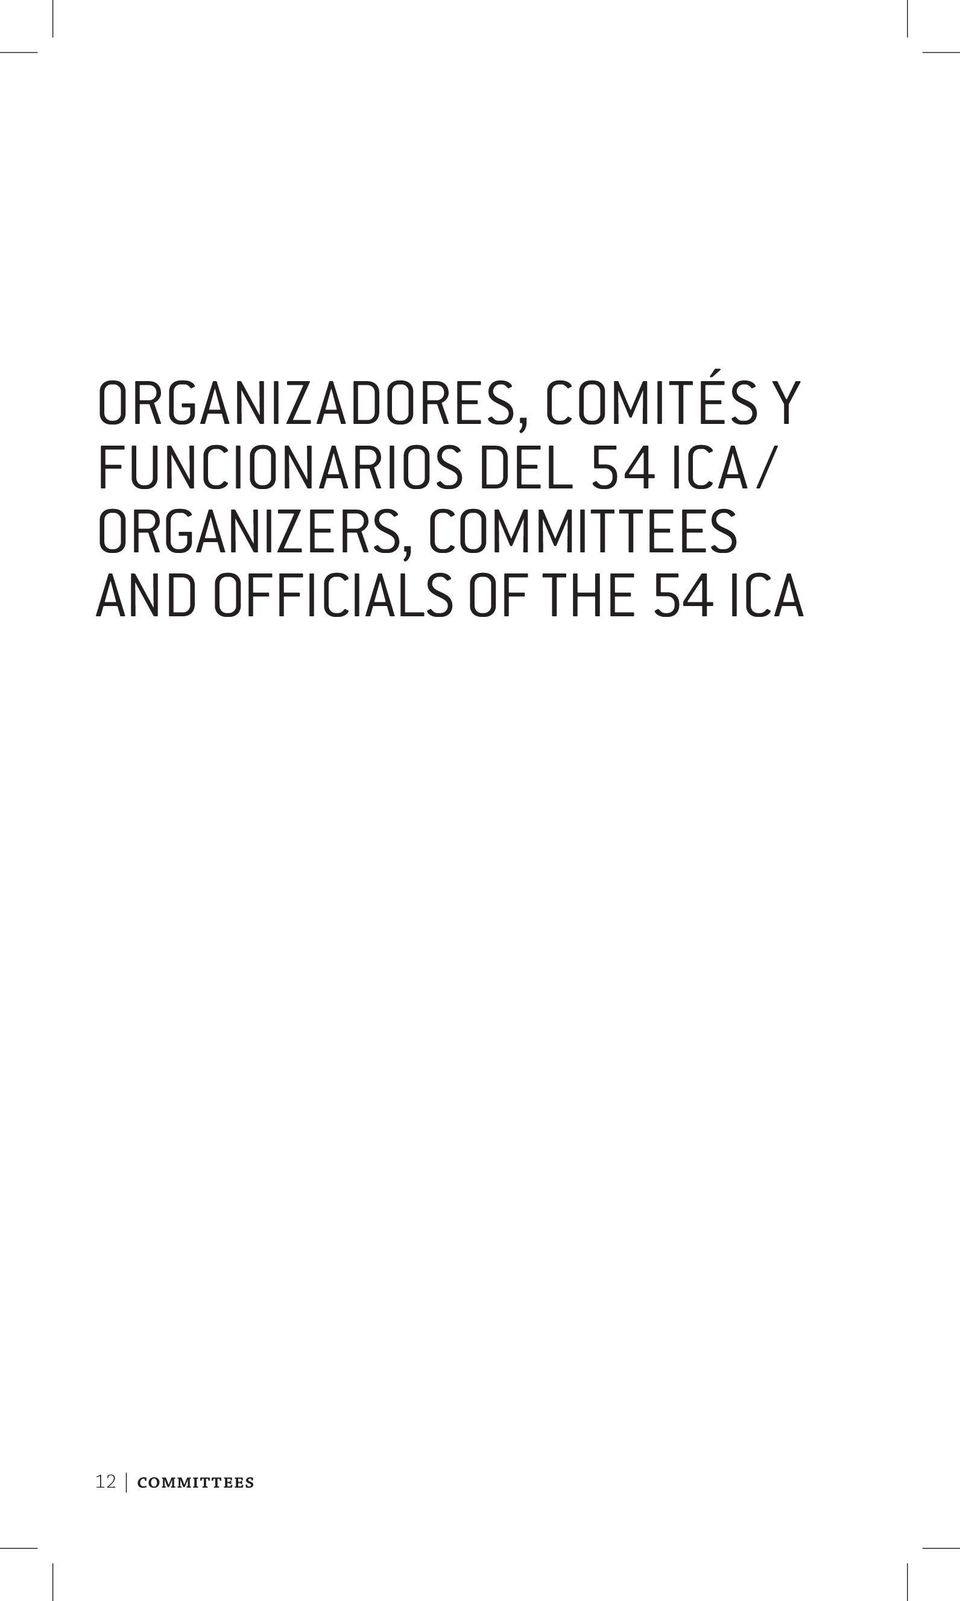 Organizers, Committees and